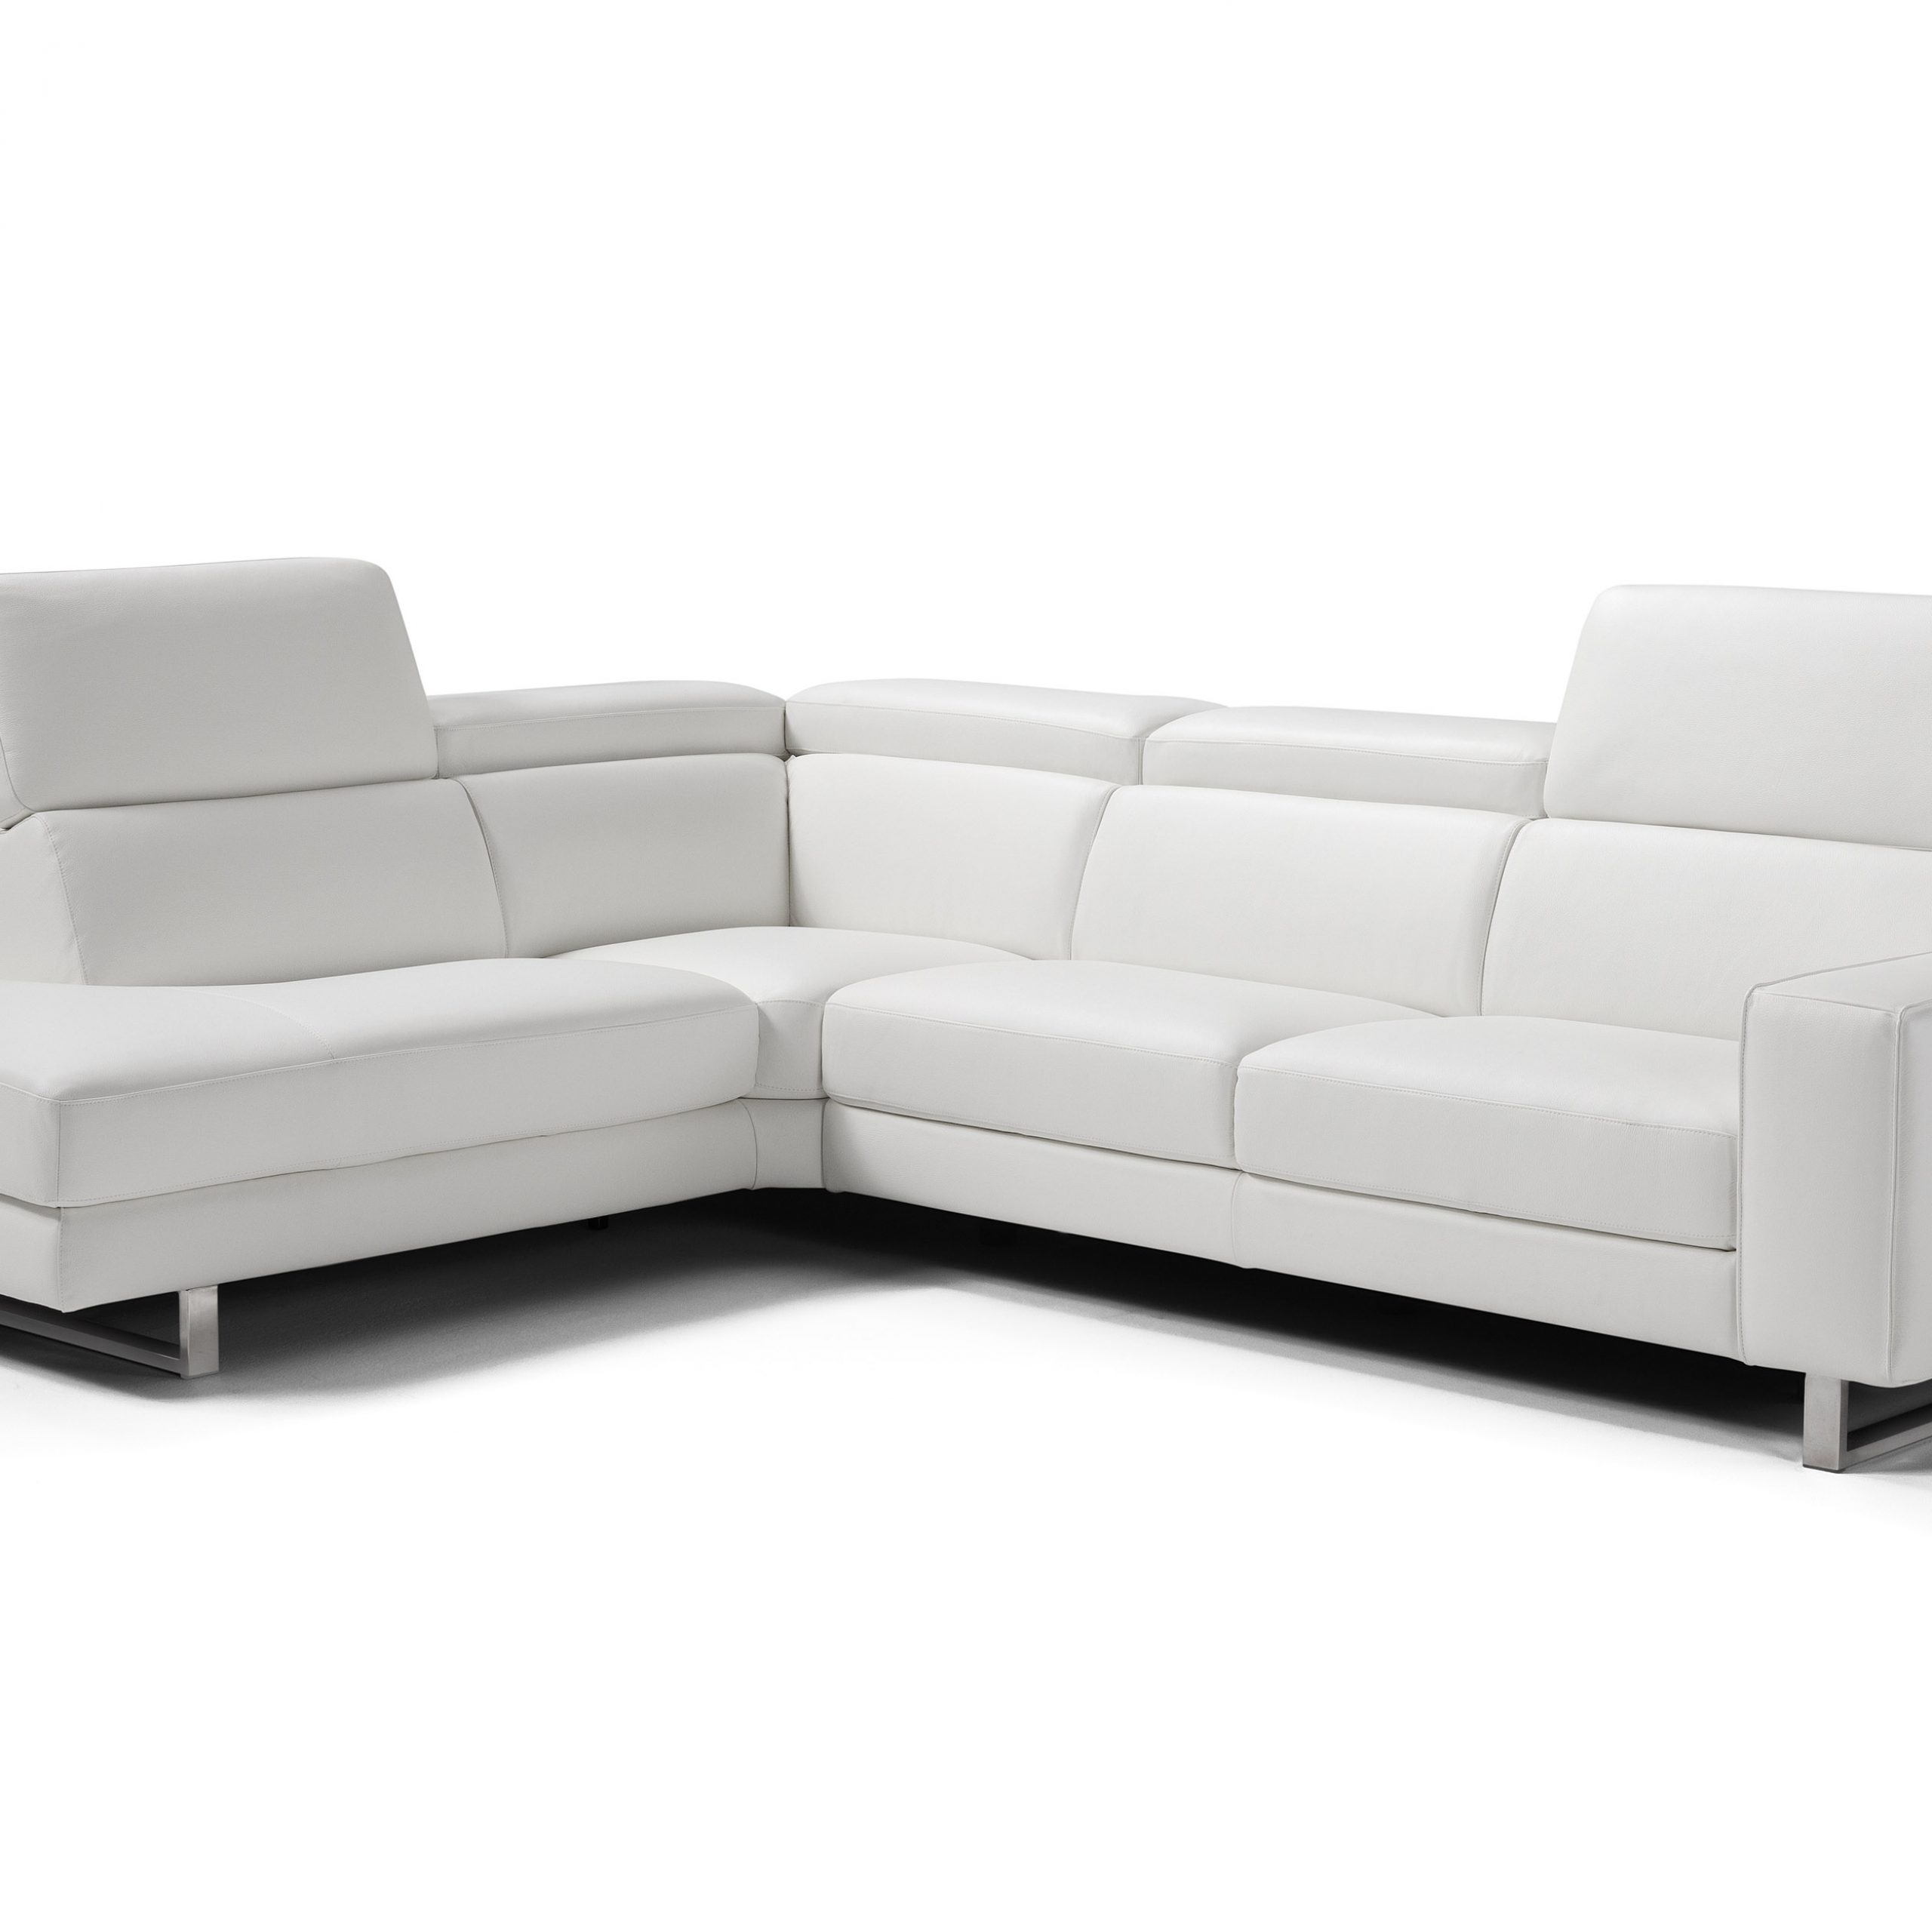 [%Italian Top Grain Leather Sectional With Adjustable Inside Trendy Matilda 100% Top Grain Leather Chaise Sectional Sofas|Matilda 100% Top Grain Leather Chaise Sectional Sofas Throughout Well Liked Italian Top Grain Leather Sectional With Adjustable|Most Current Matilda 100% Top Grain Leather Chaise Sectional Sofas Throughout Italian Top Grain Leather Sectional With Adjustable|Best And Newest Italian Top Grain Leather Sectional With Adjustable Throughout Matilda 100% Top Grain Leather Chaise Sectional Sofas%] (View 9 of 25)